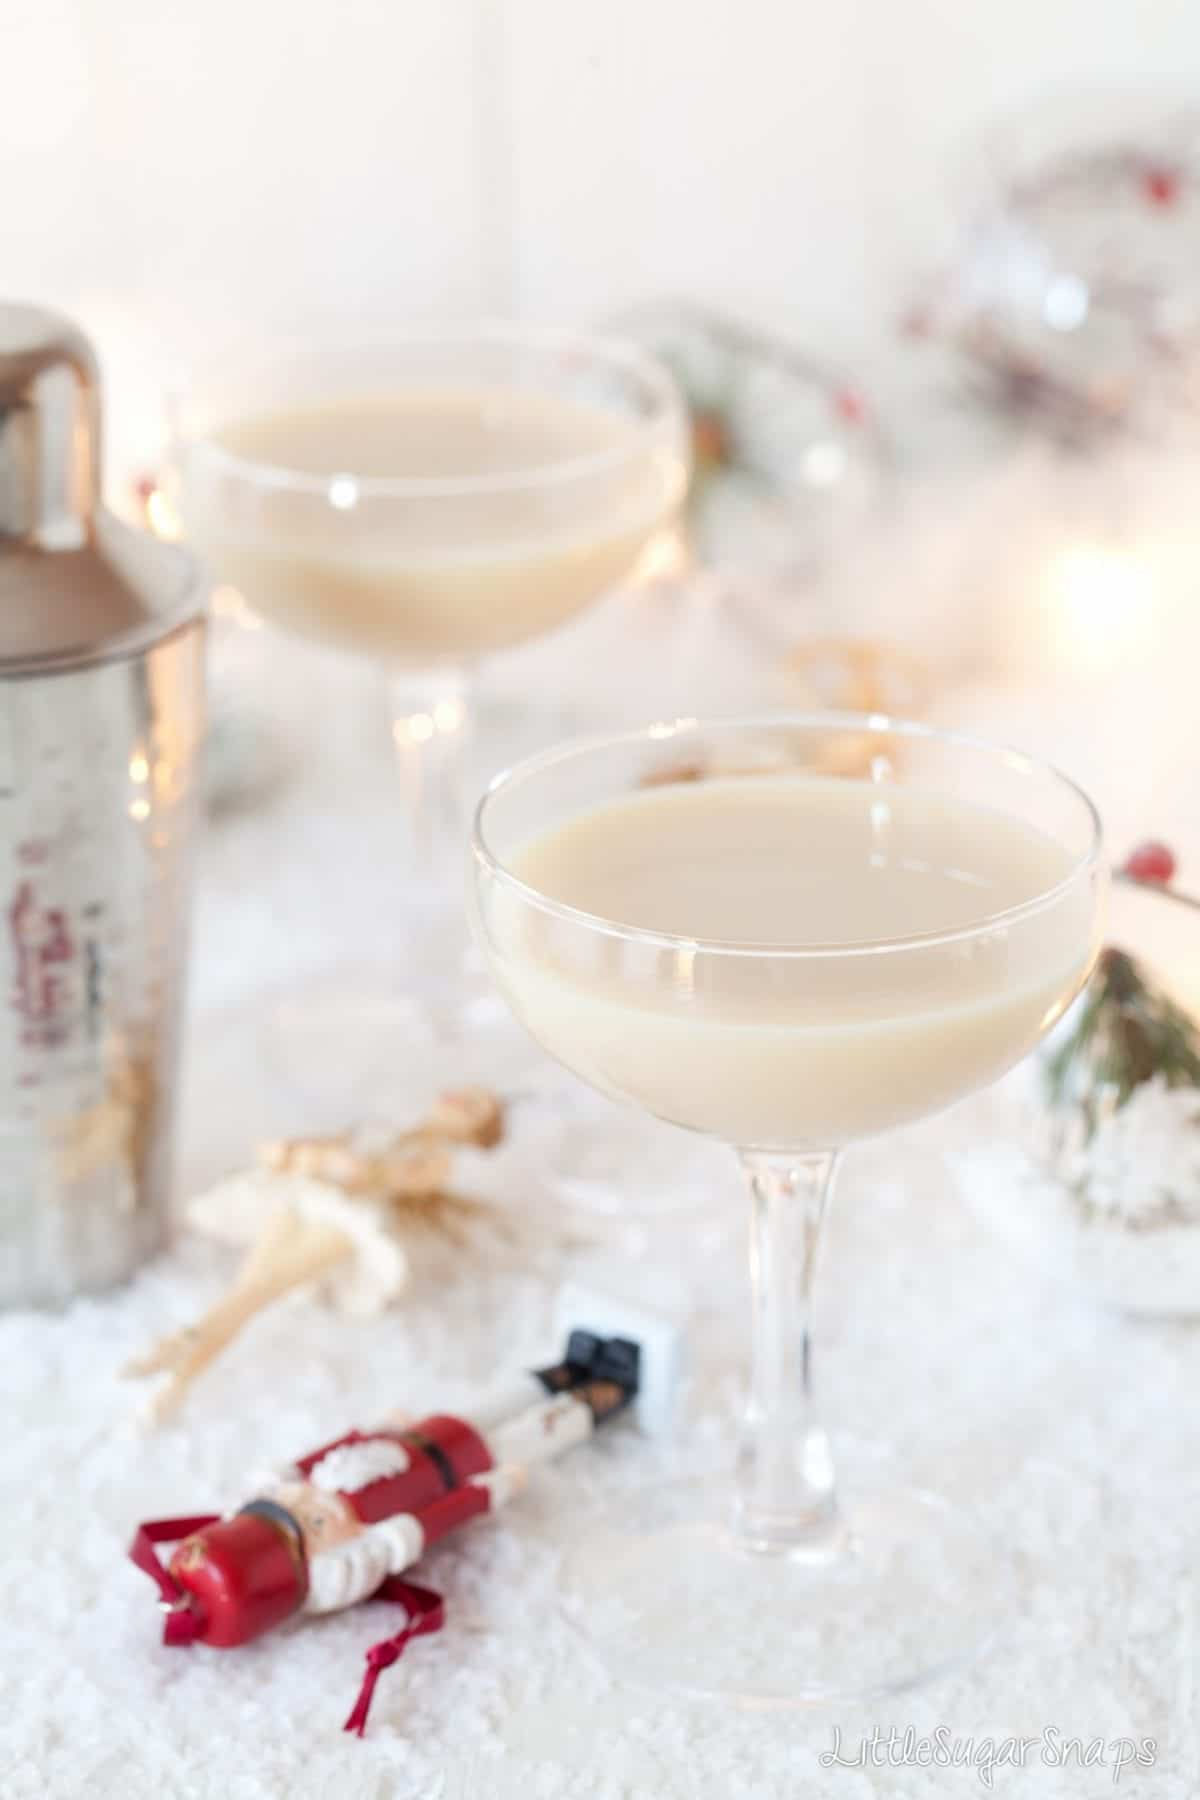 The Nutcracker Cocktail